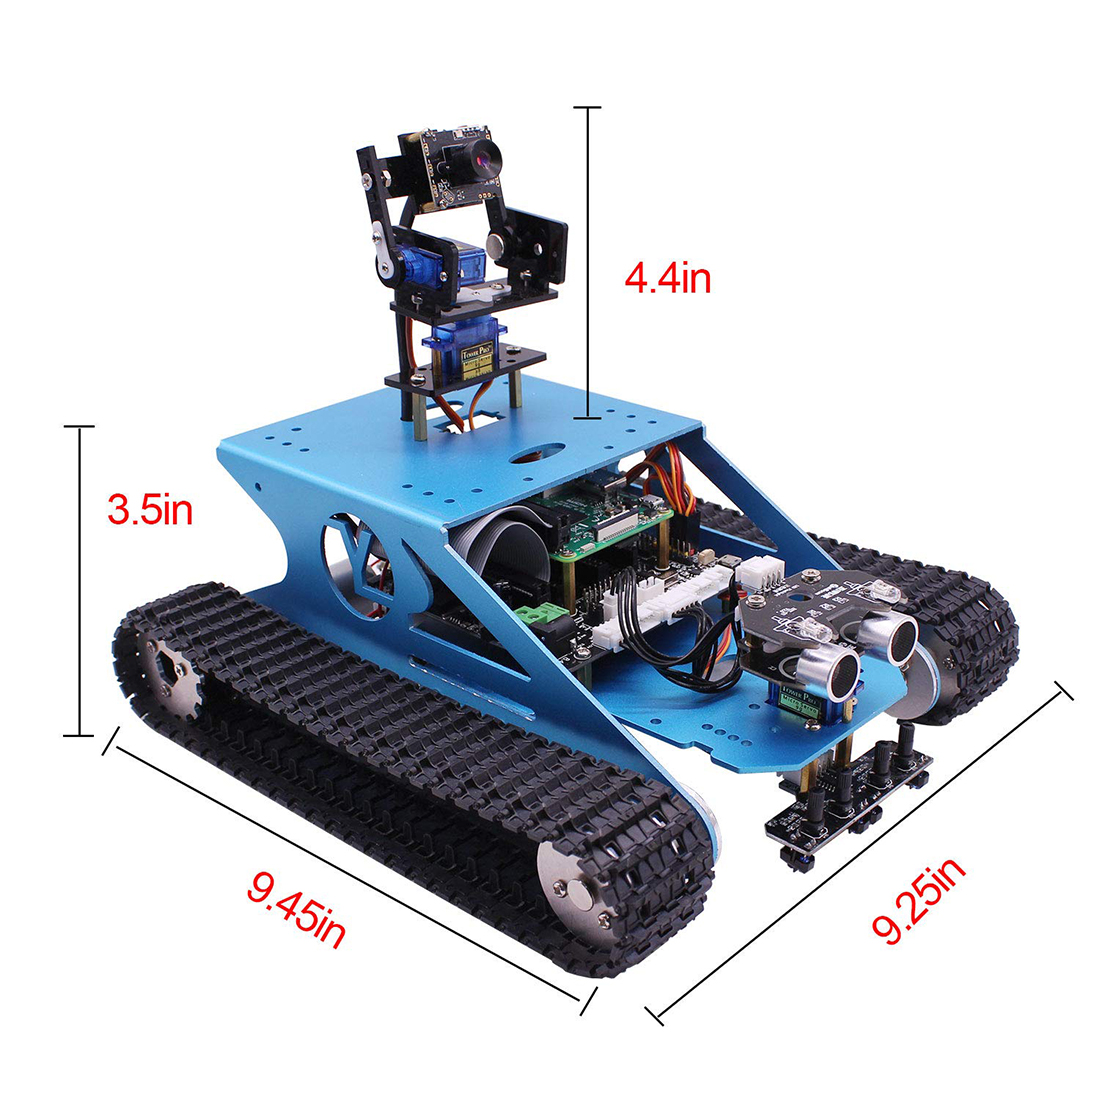 Professional Raspberry Pi Tank Smart Robotic Kit WiFi Wireless Video Programming Electronic Toy DIY Robot Compatible RPI 3B/3B+